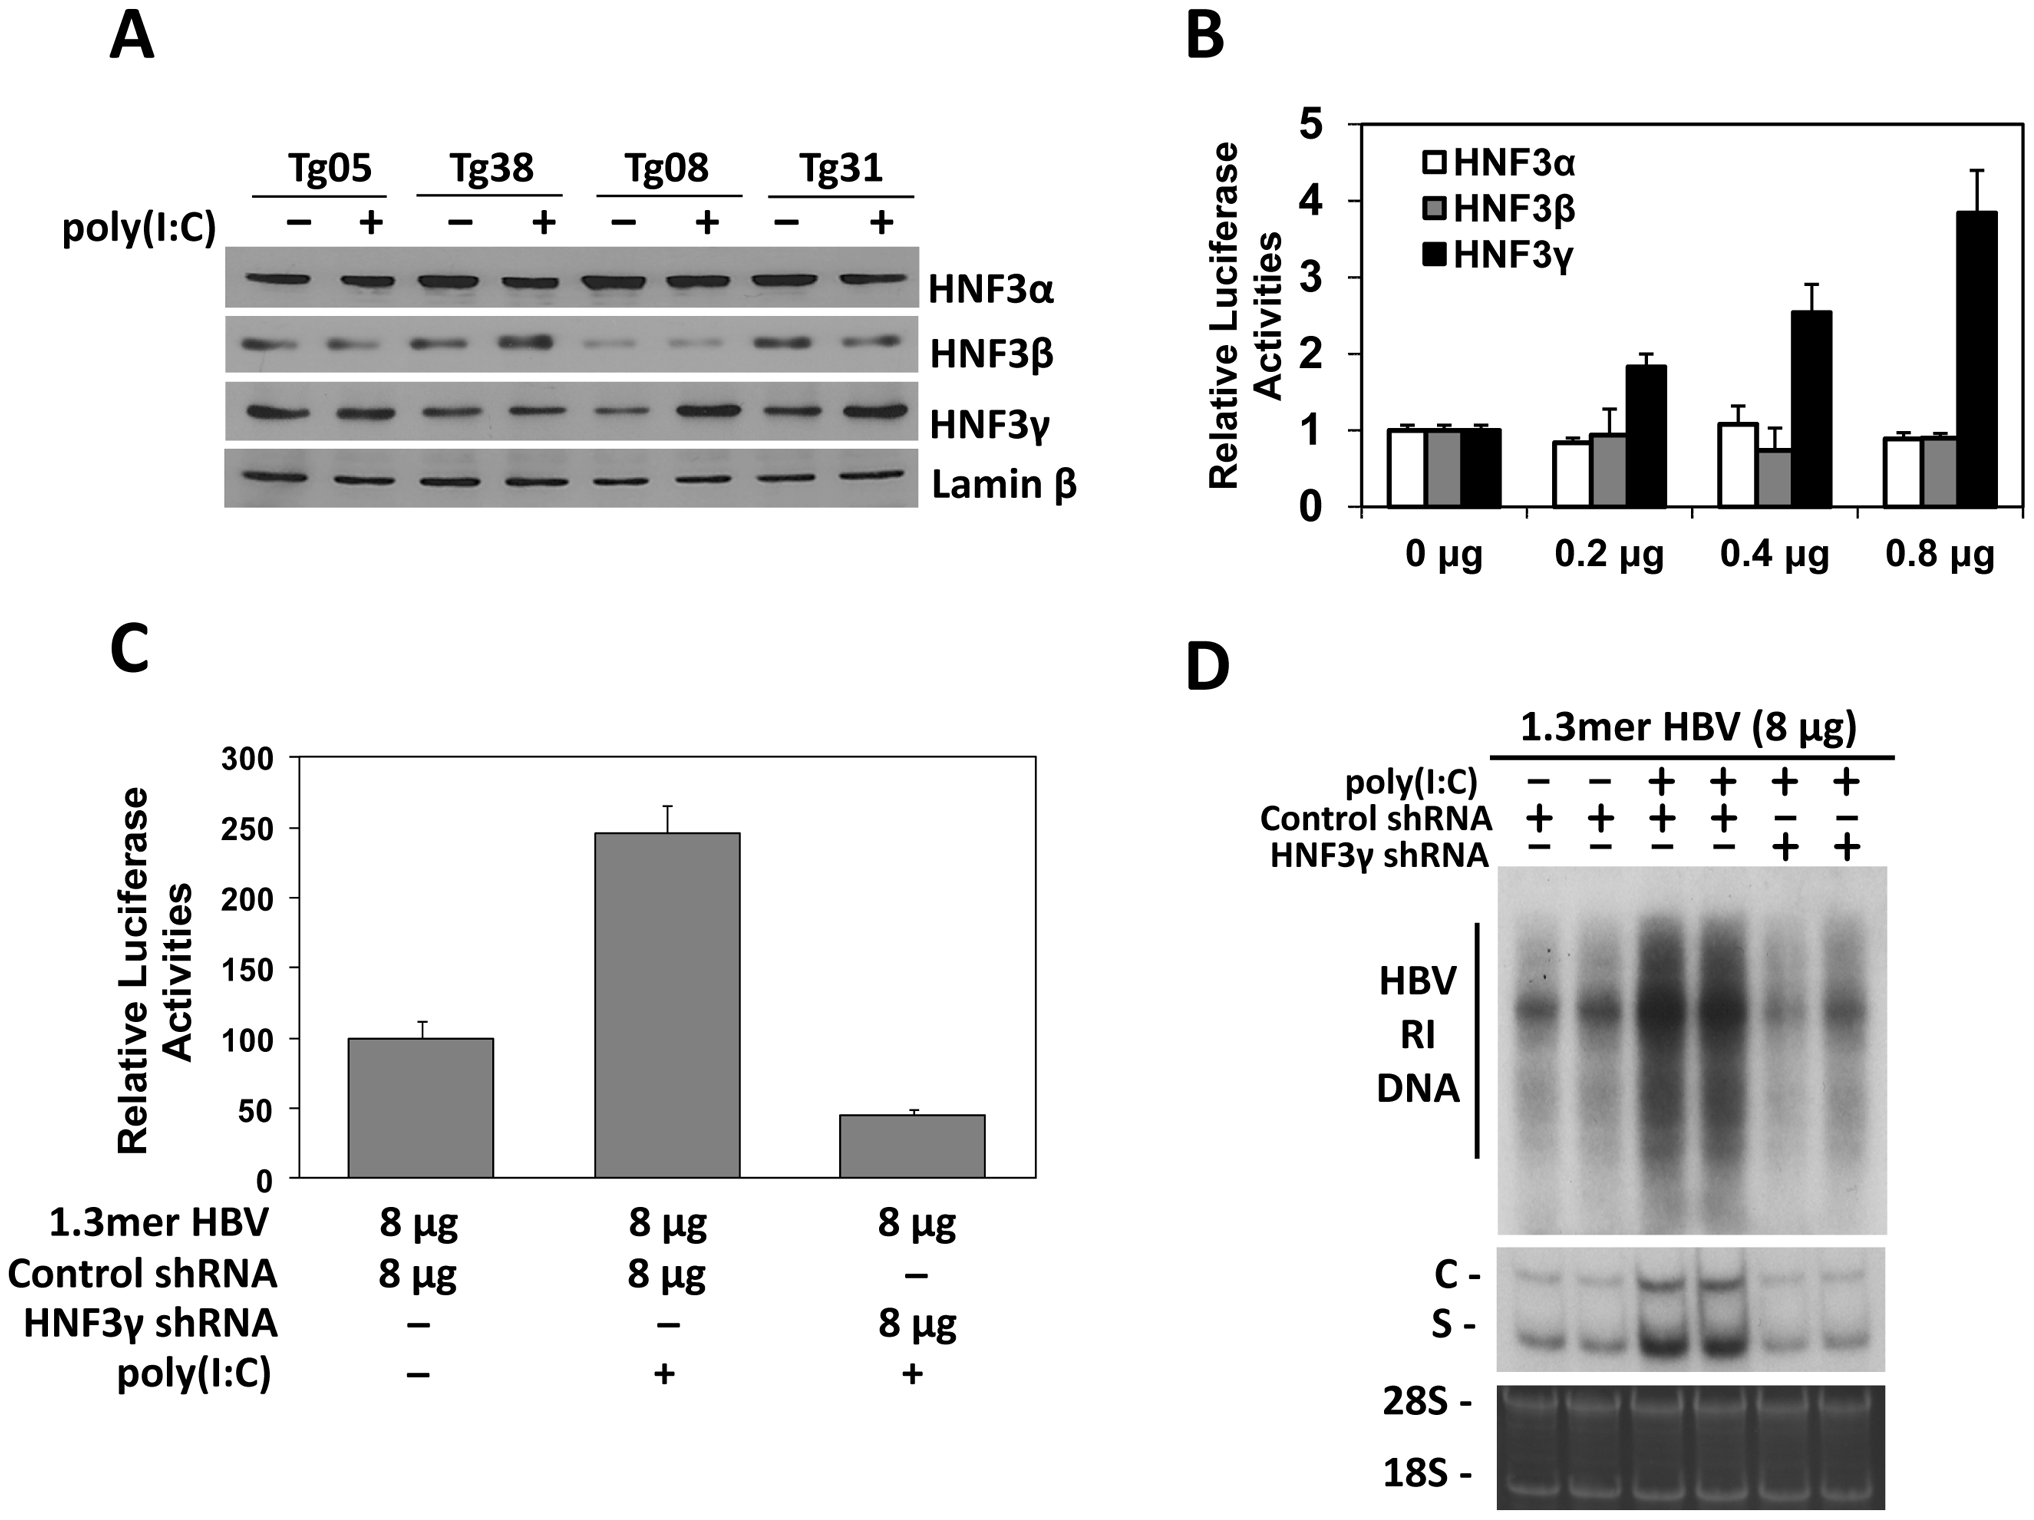 Effects of HNF3 on HBV replication.